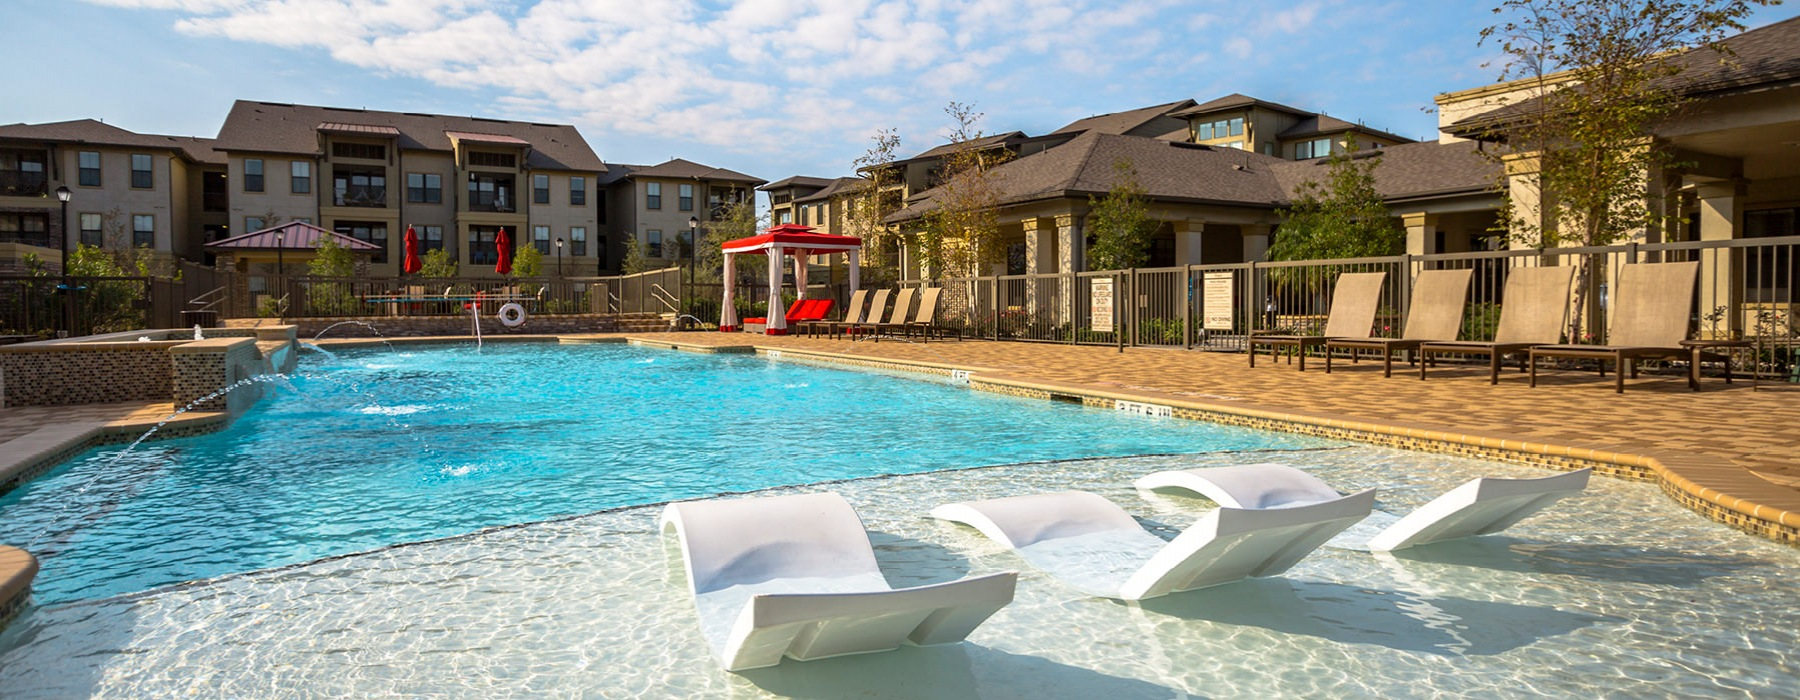 sun deck in resort style pool with lounge chairs looking across the pool and its fountains